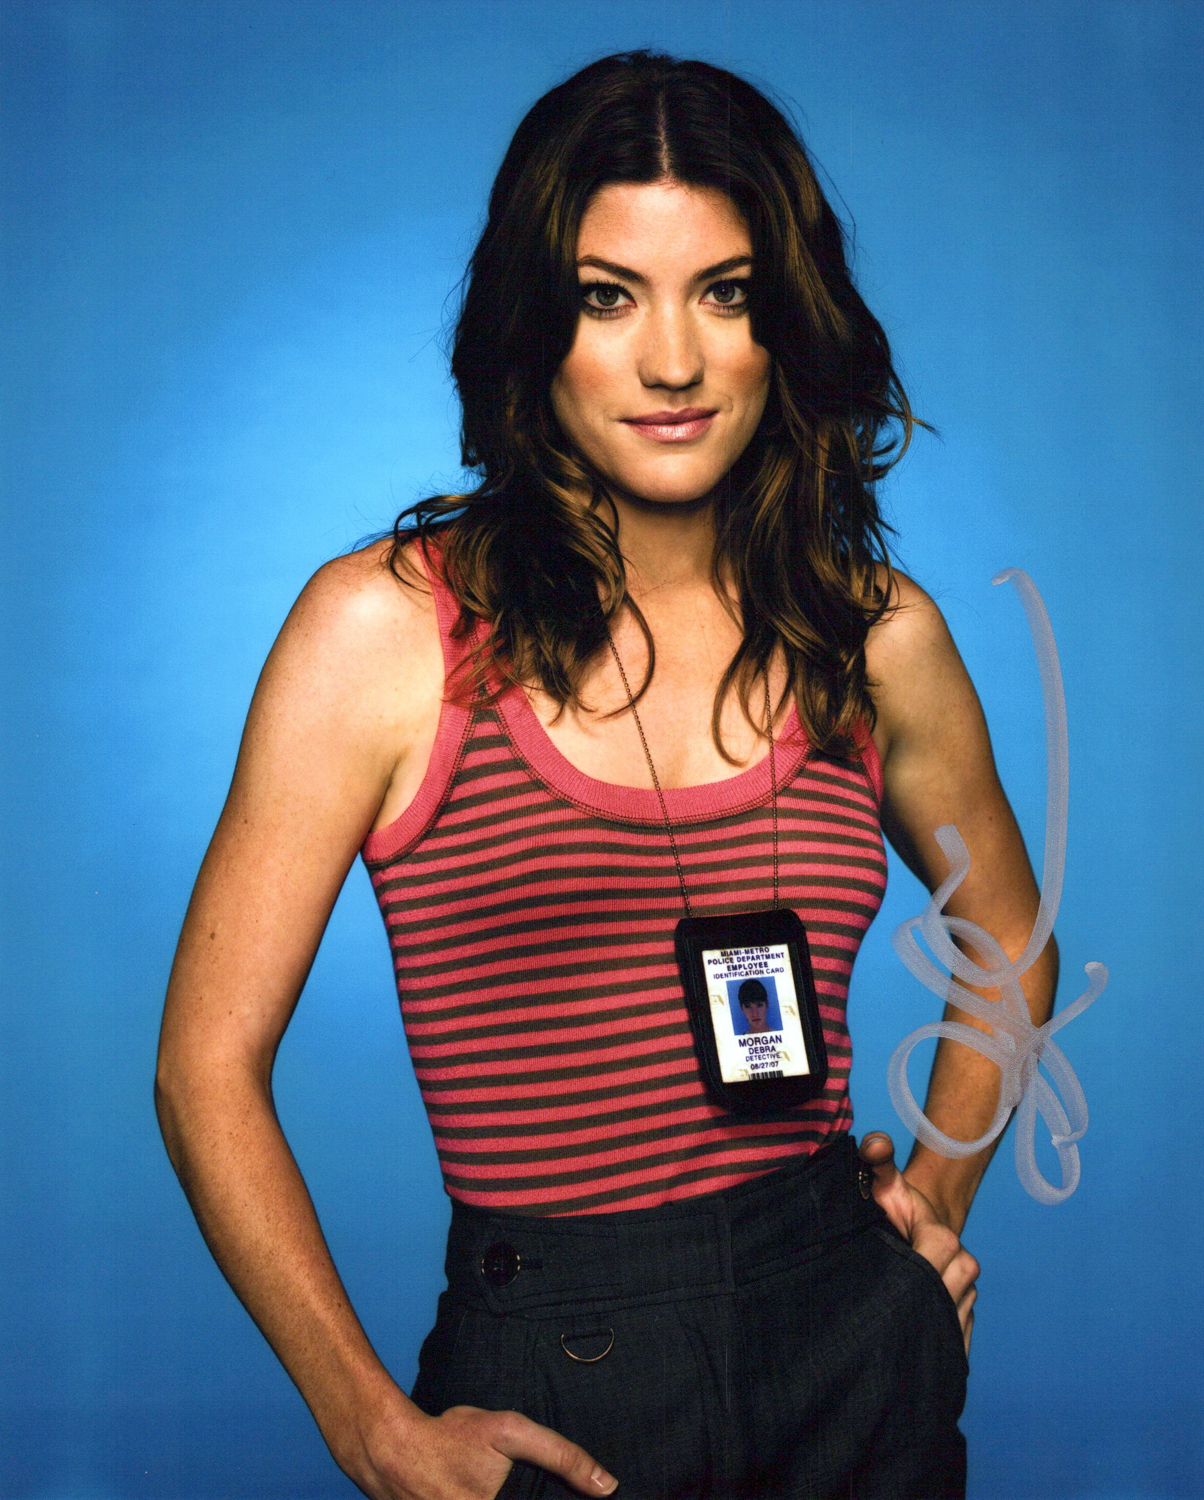 Jennifer Carpenter Original Autogramm auf Foto 20x25cm - Dexter